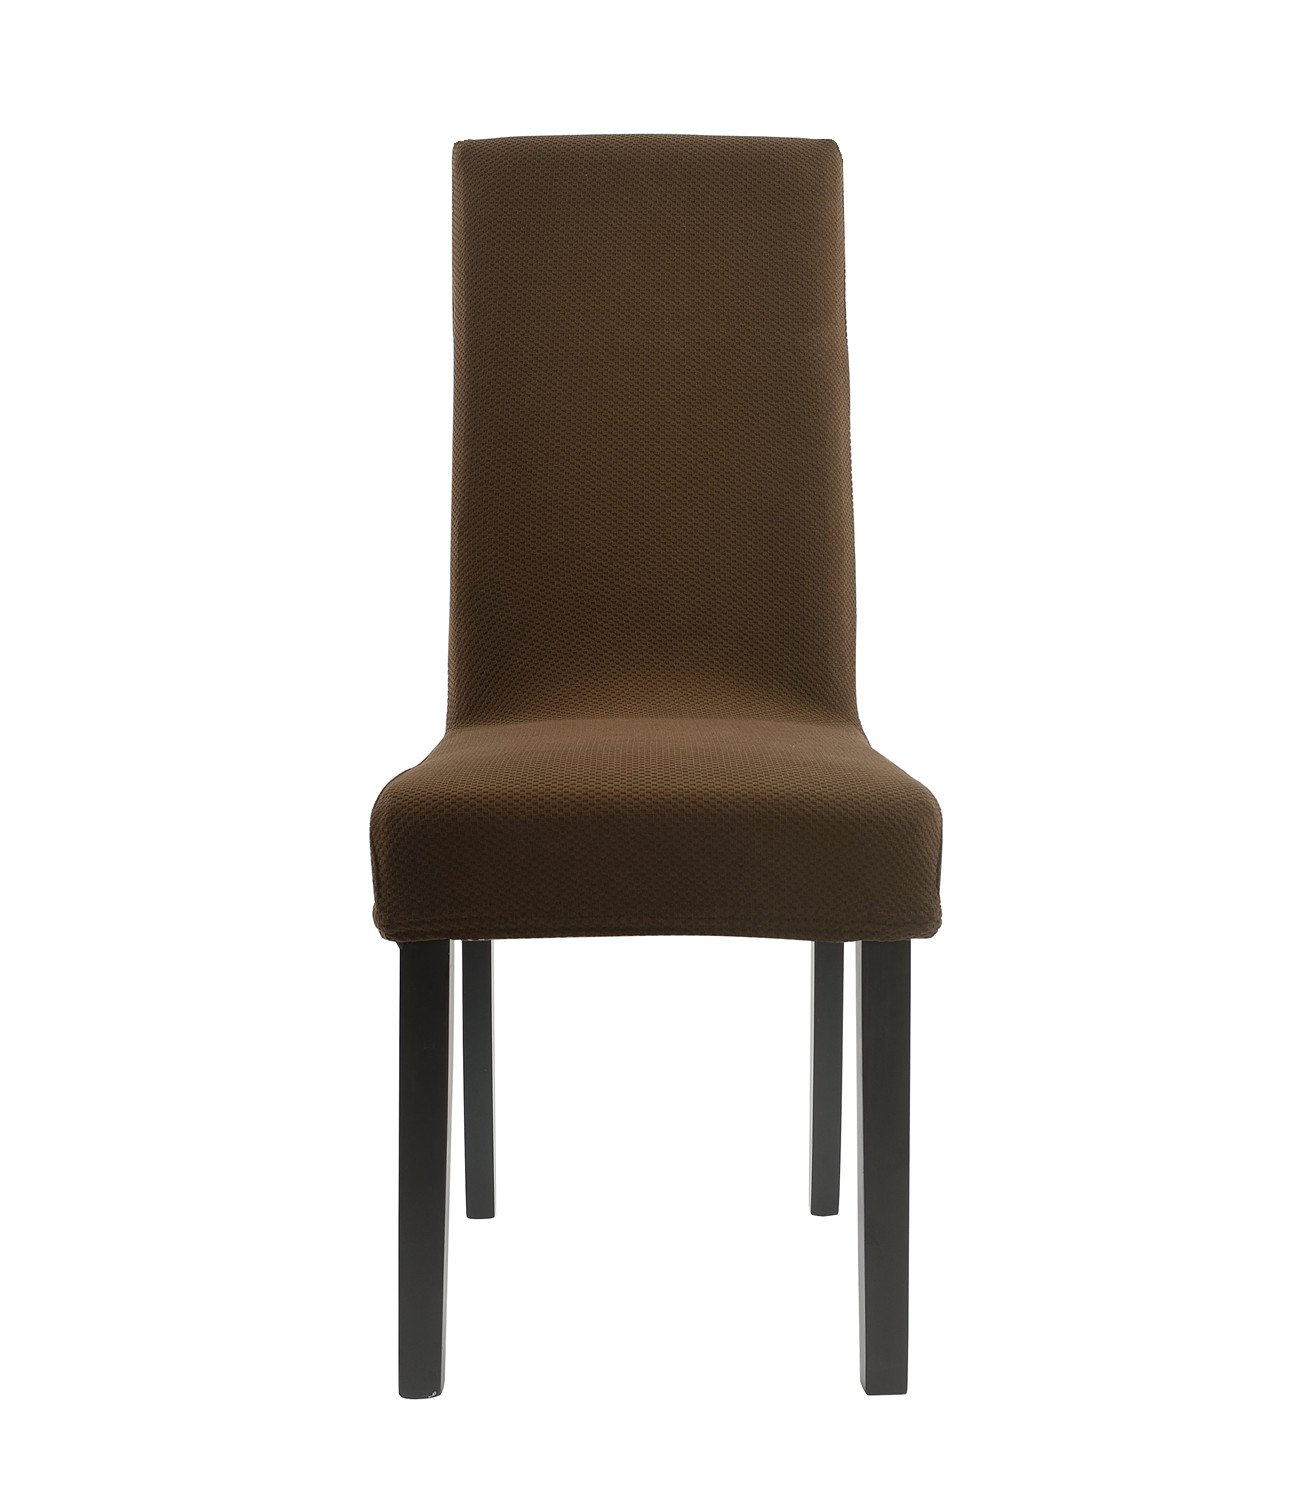 amazon com homluxe knit stretch dining room chair slipcovers 2